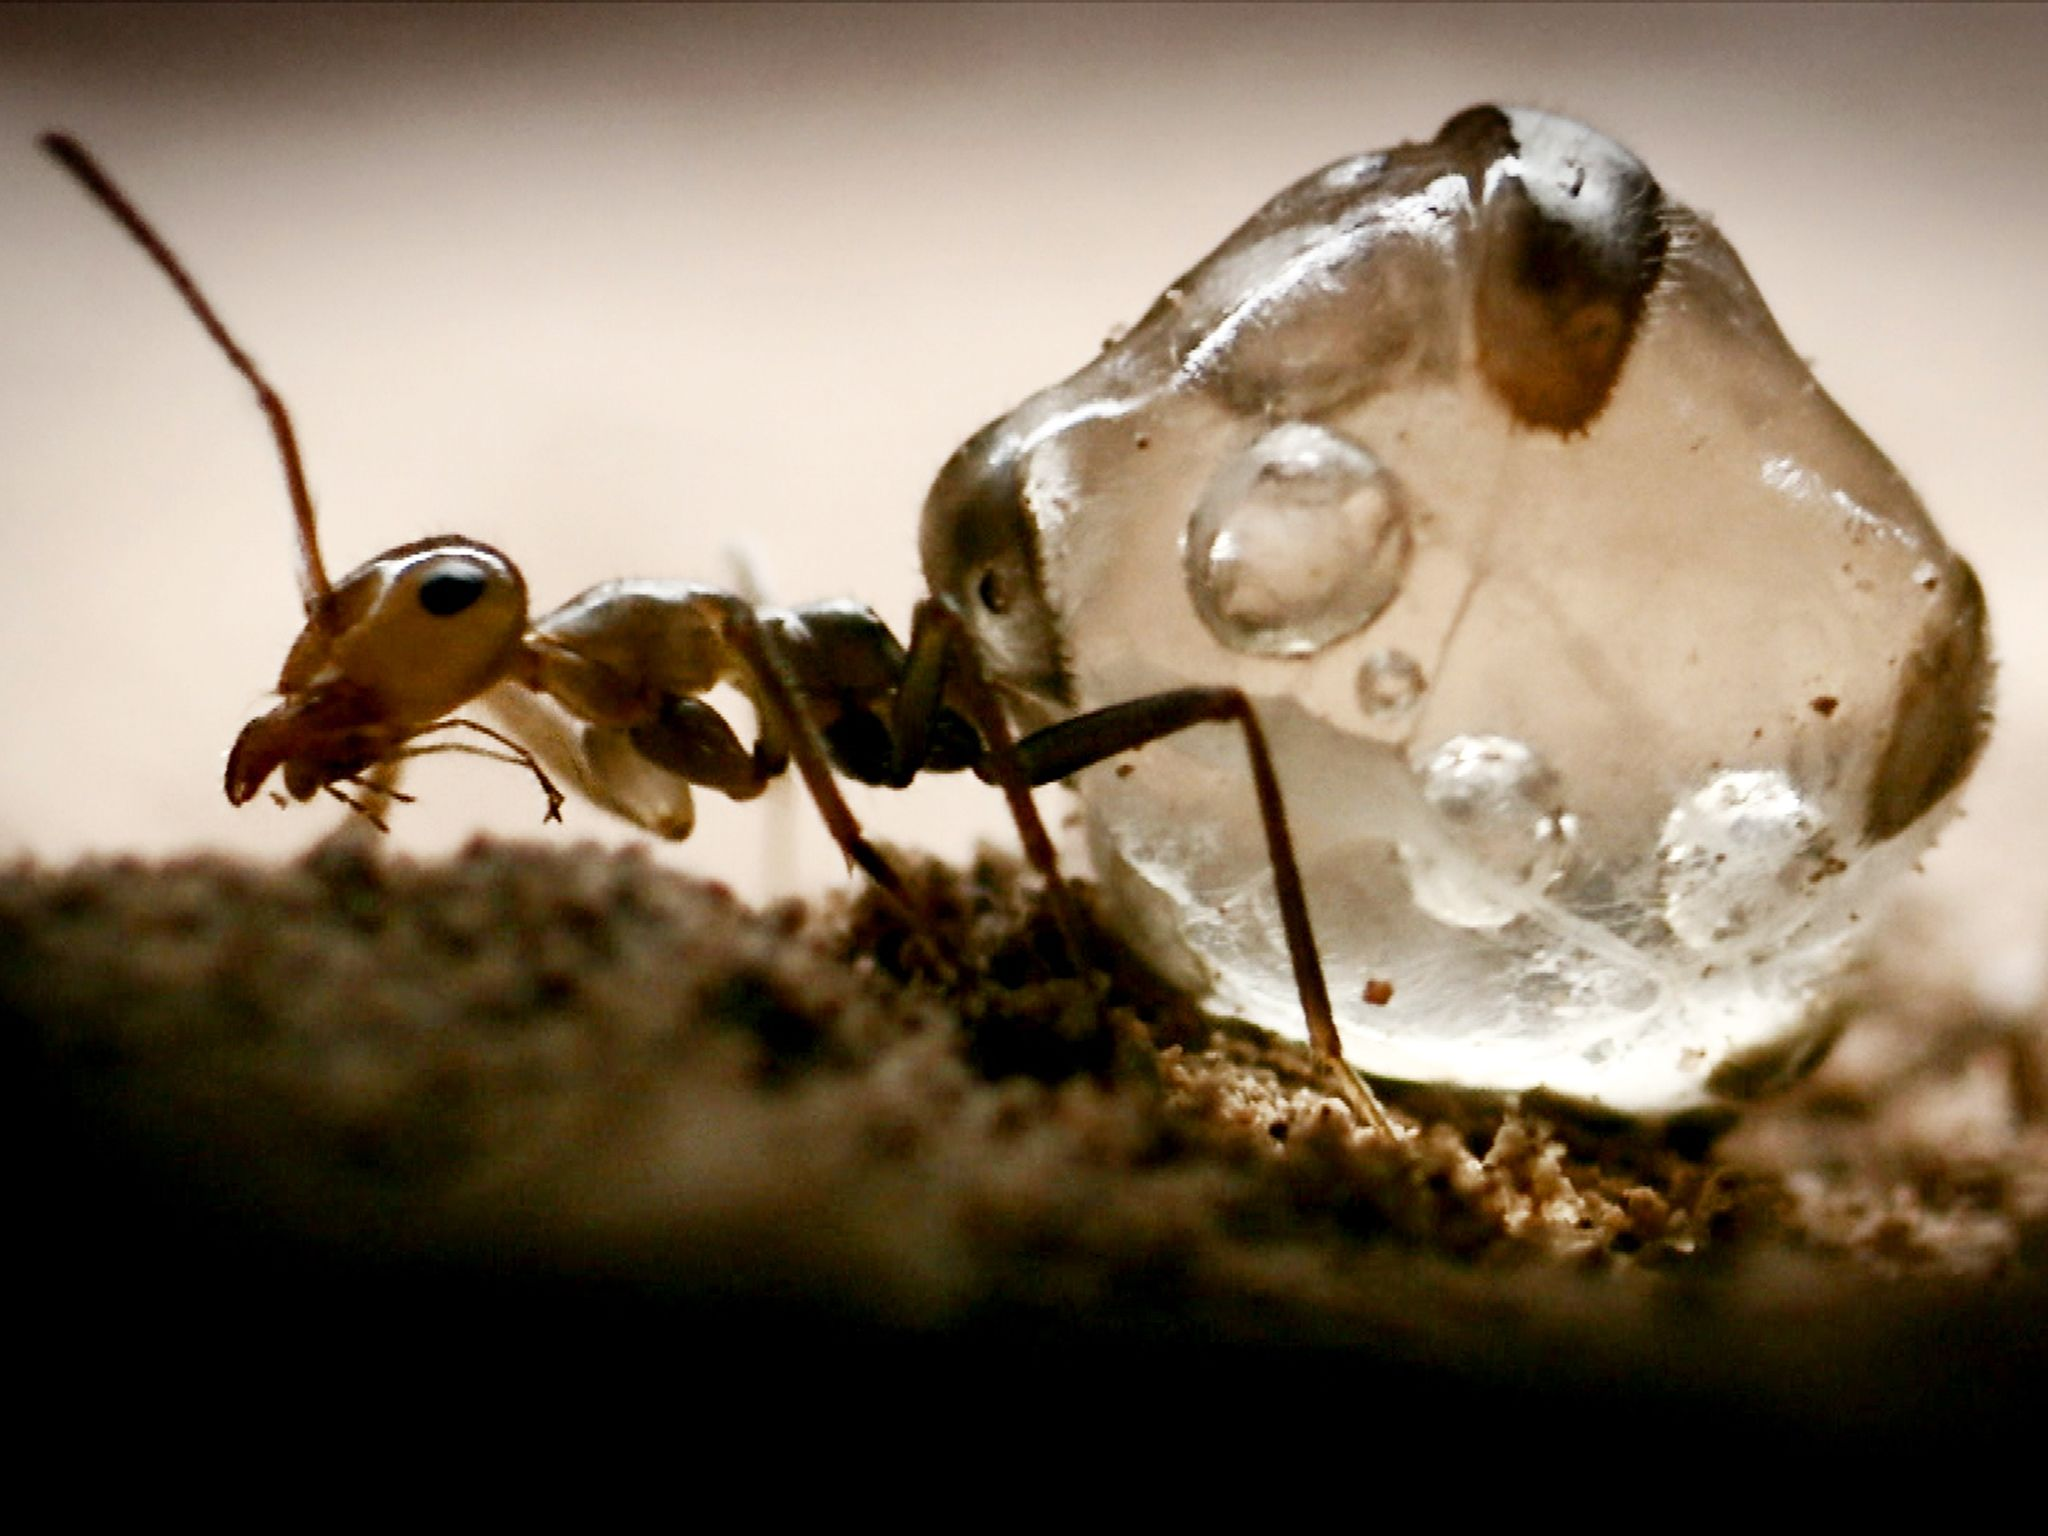 Honey ant. This image is from Secrets of the Wild. [Фото дня - Октябрь 2014]